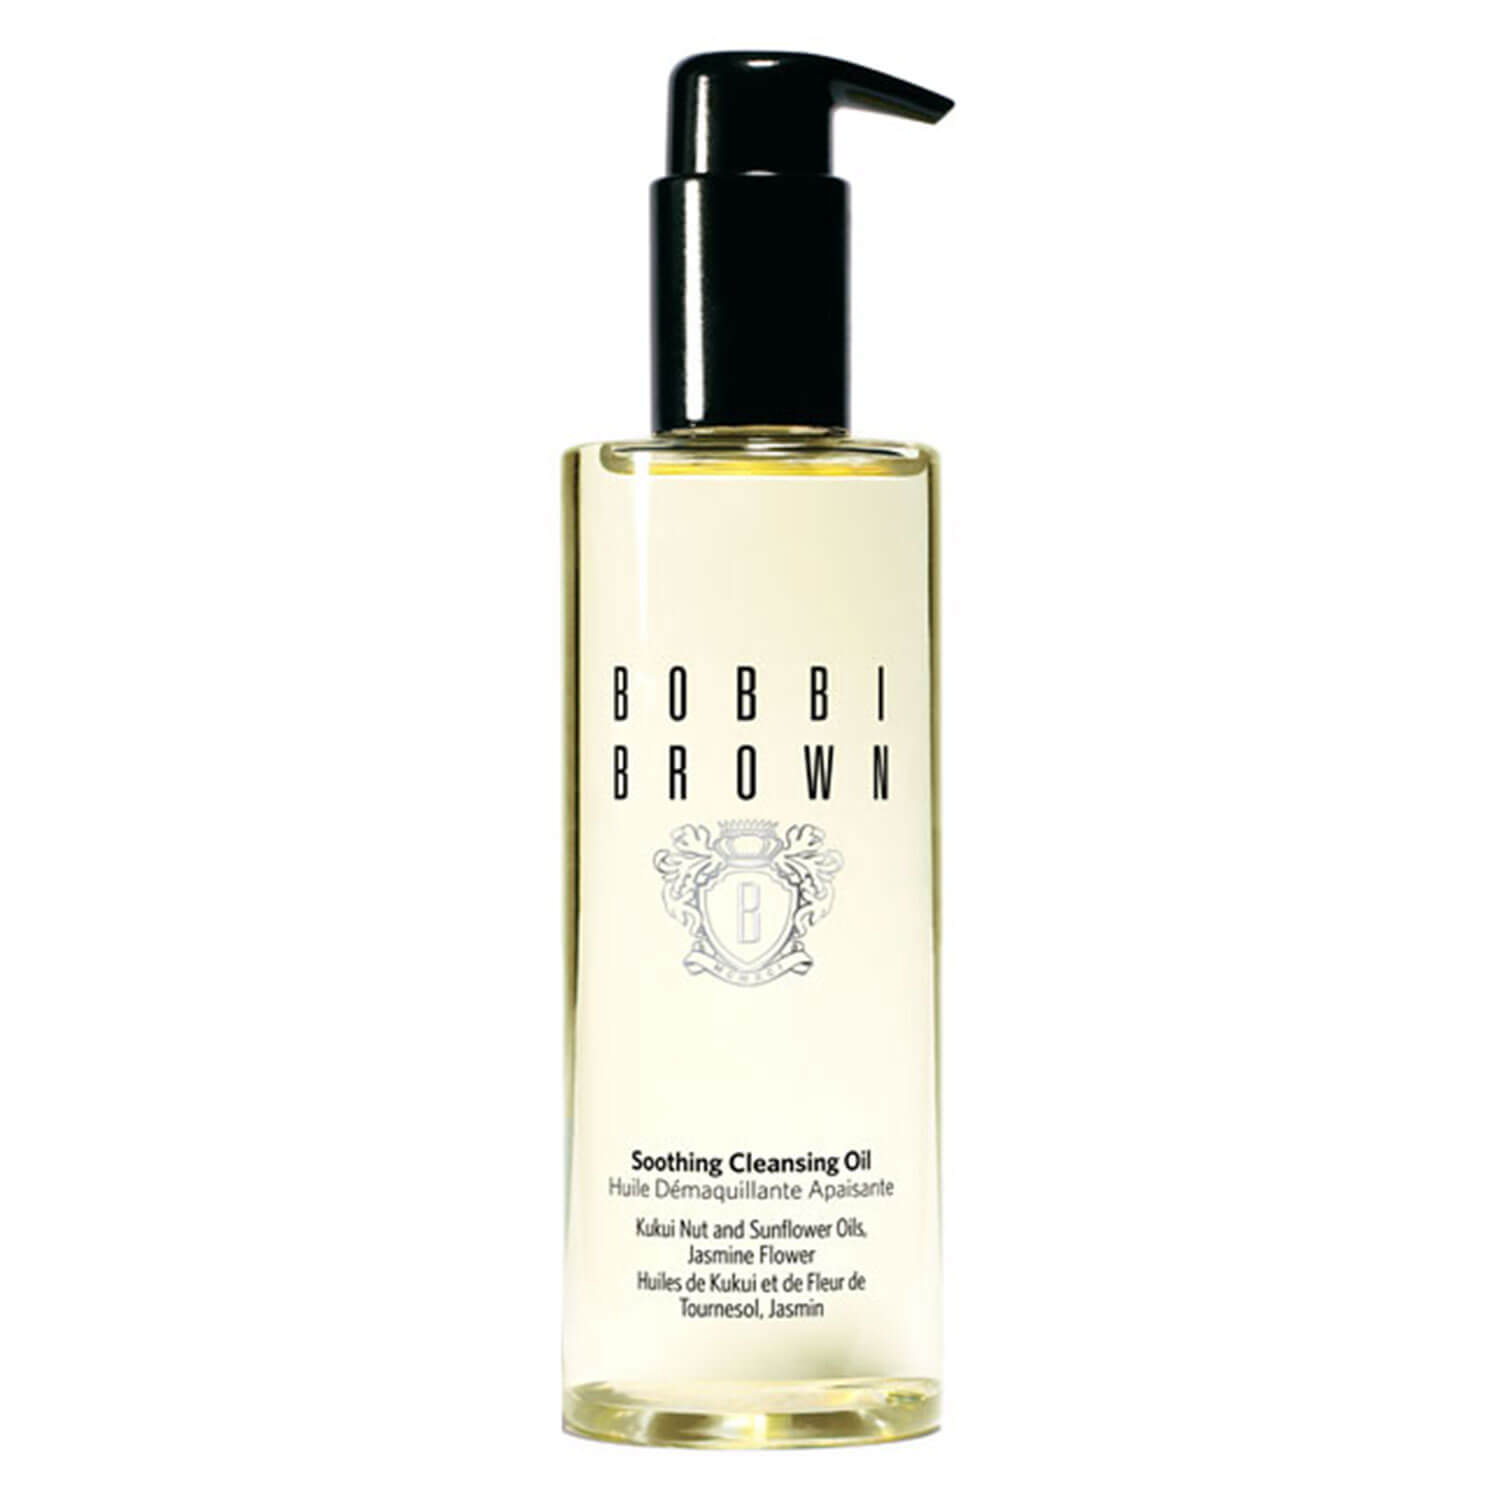 BB Skincare - Soothing Cleansing Oil